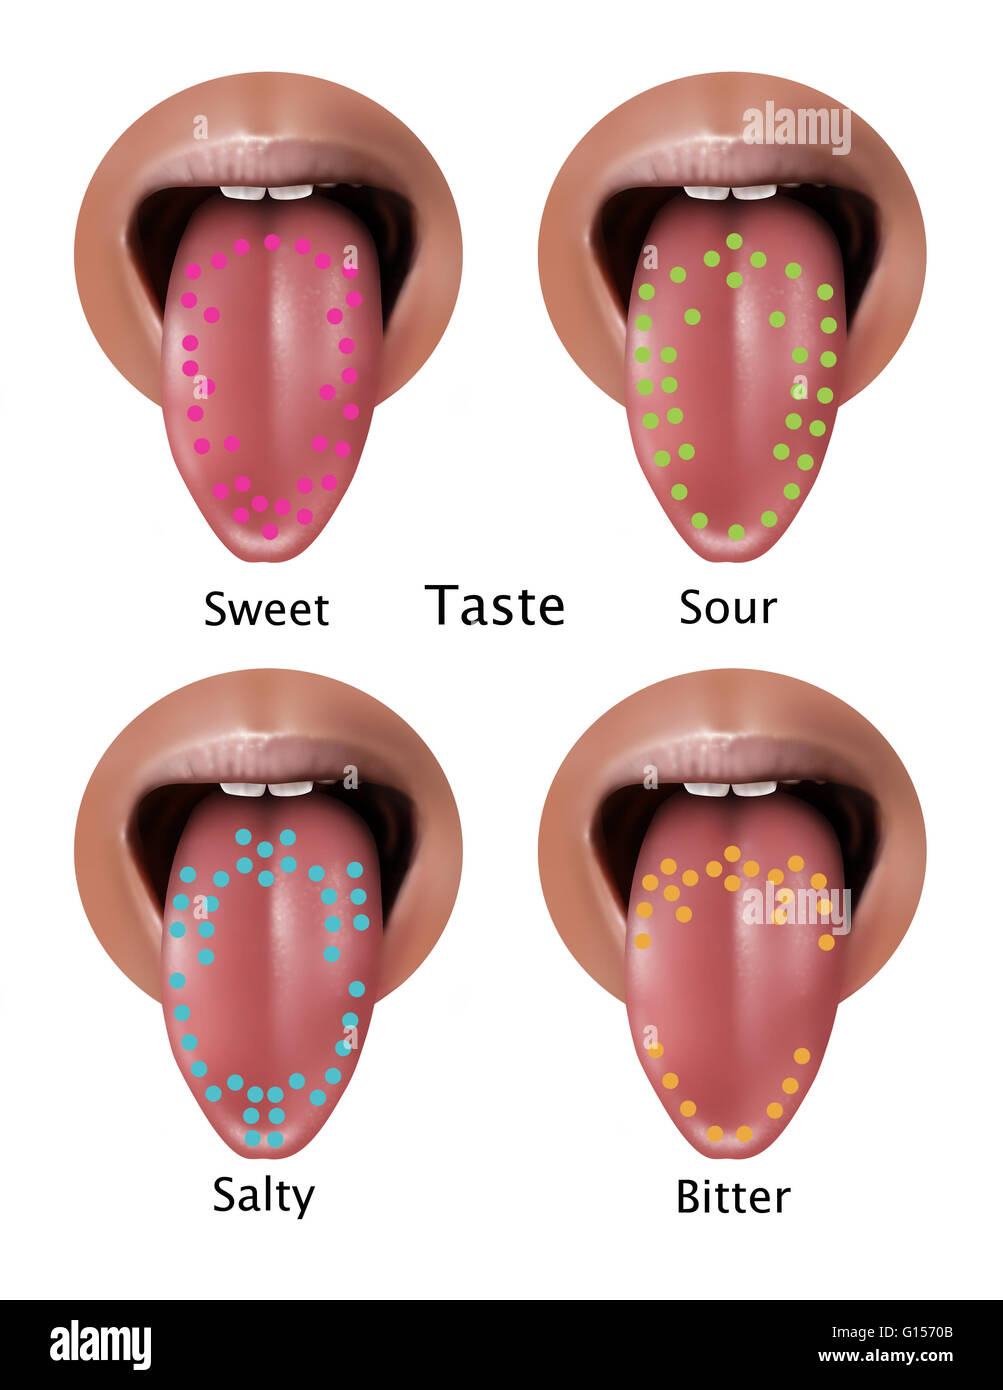 Tongue anatomy taste buds